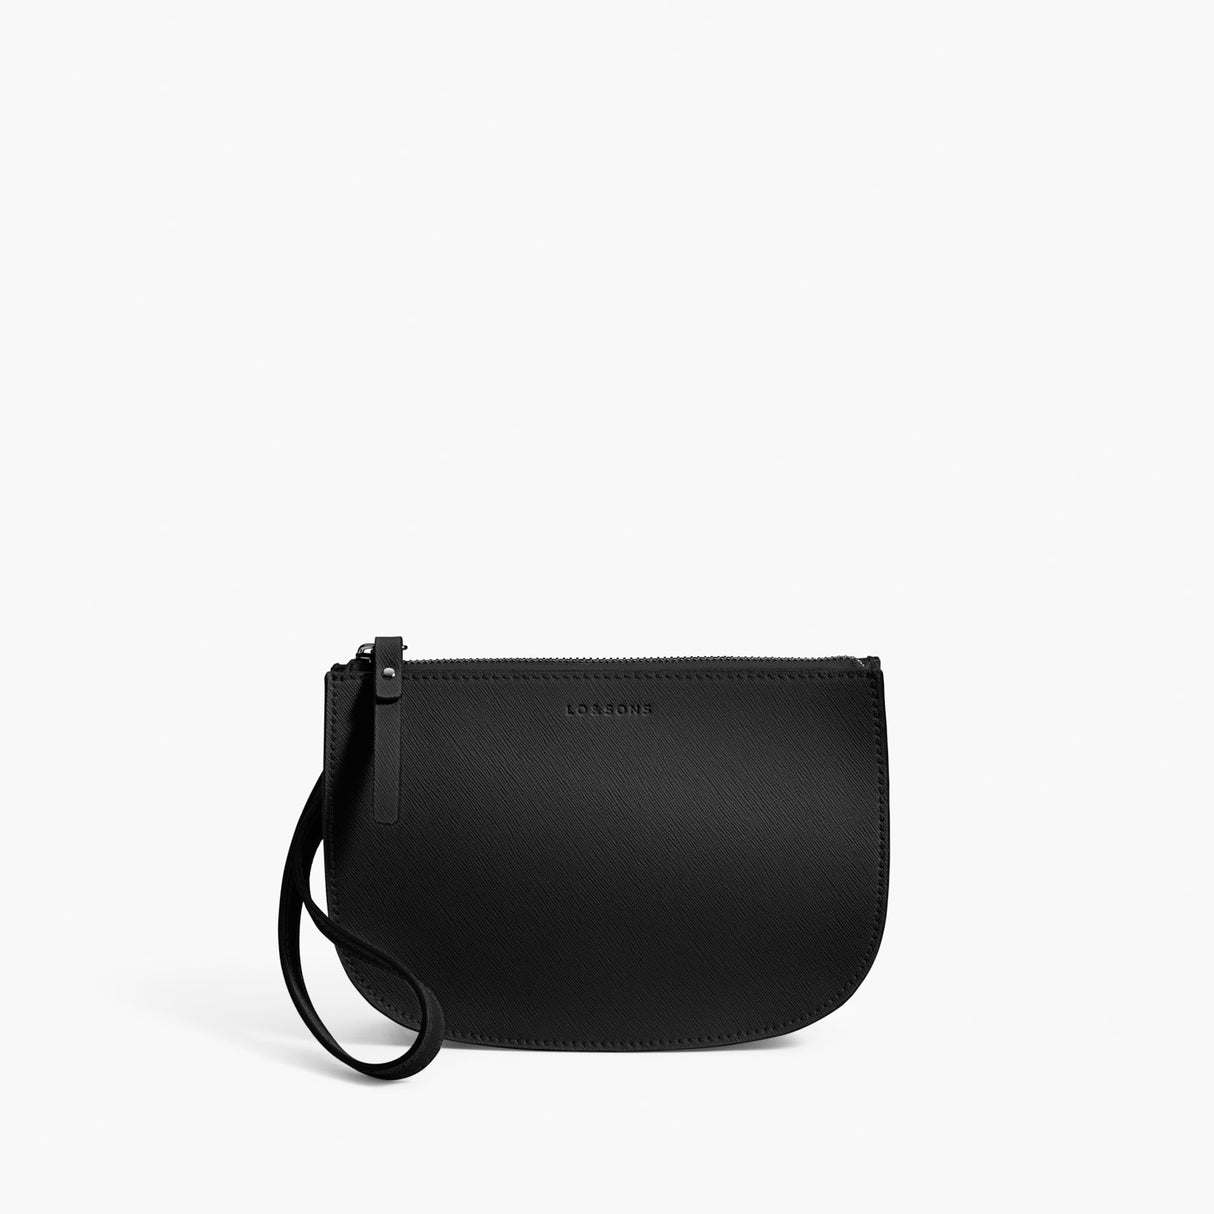 Front Wristlet - Waverley 2 - Saffiano Leather - Black / Gunmetal / Grey - Crossbody Bag - Lo & Sons